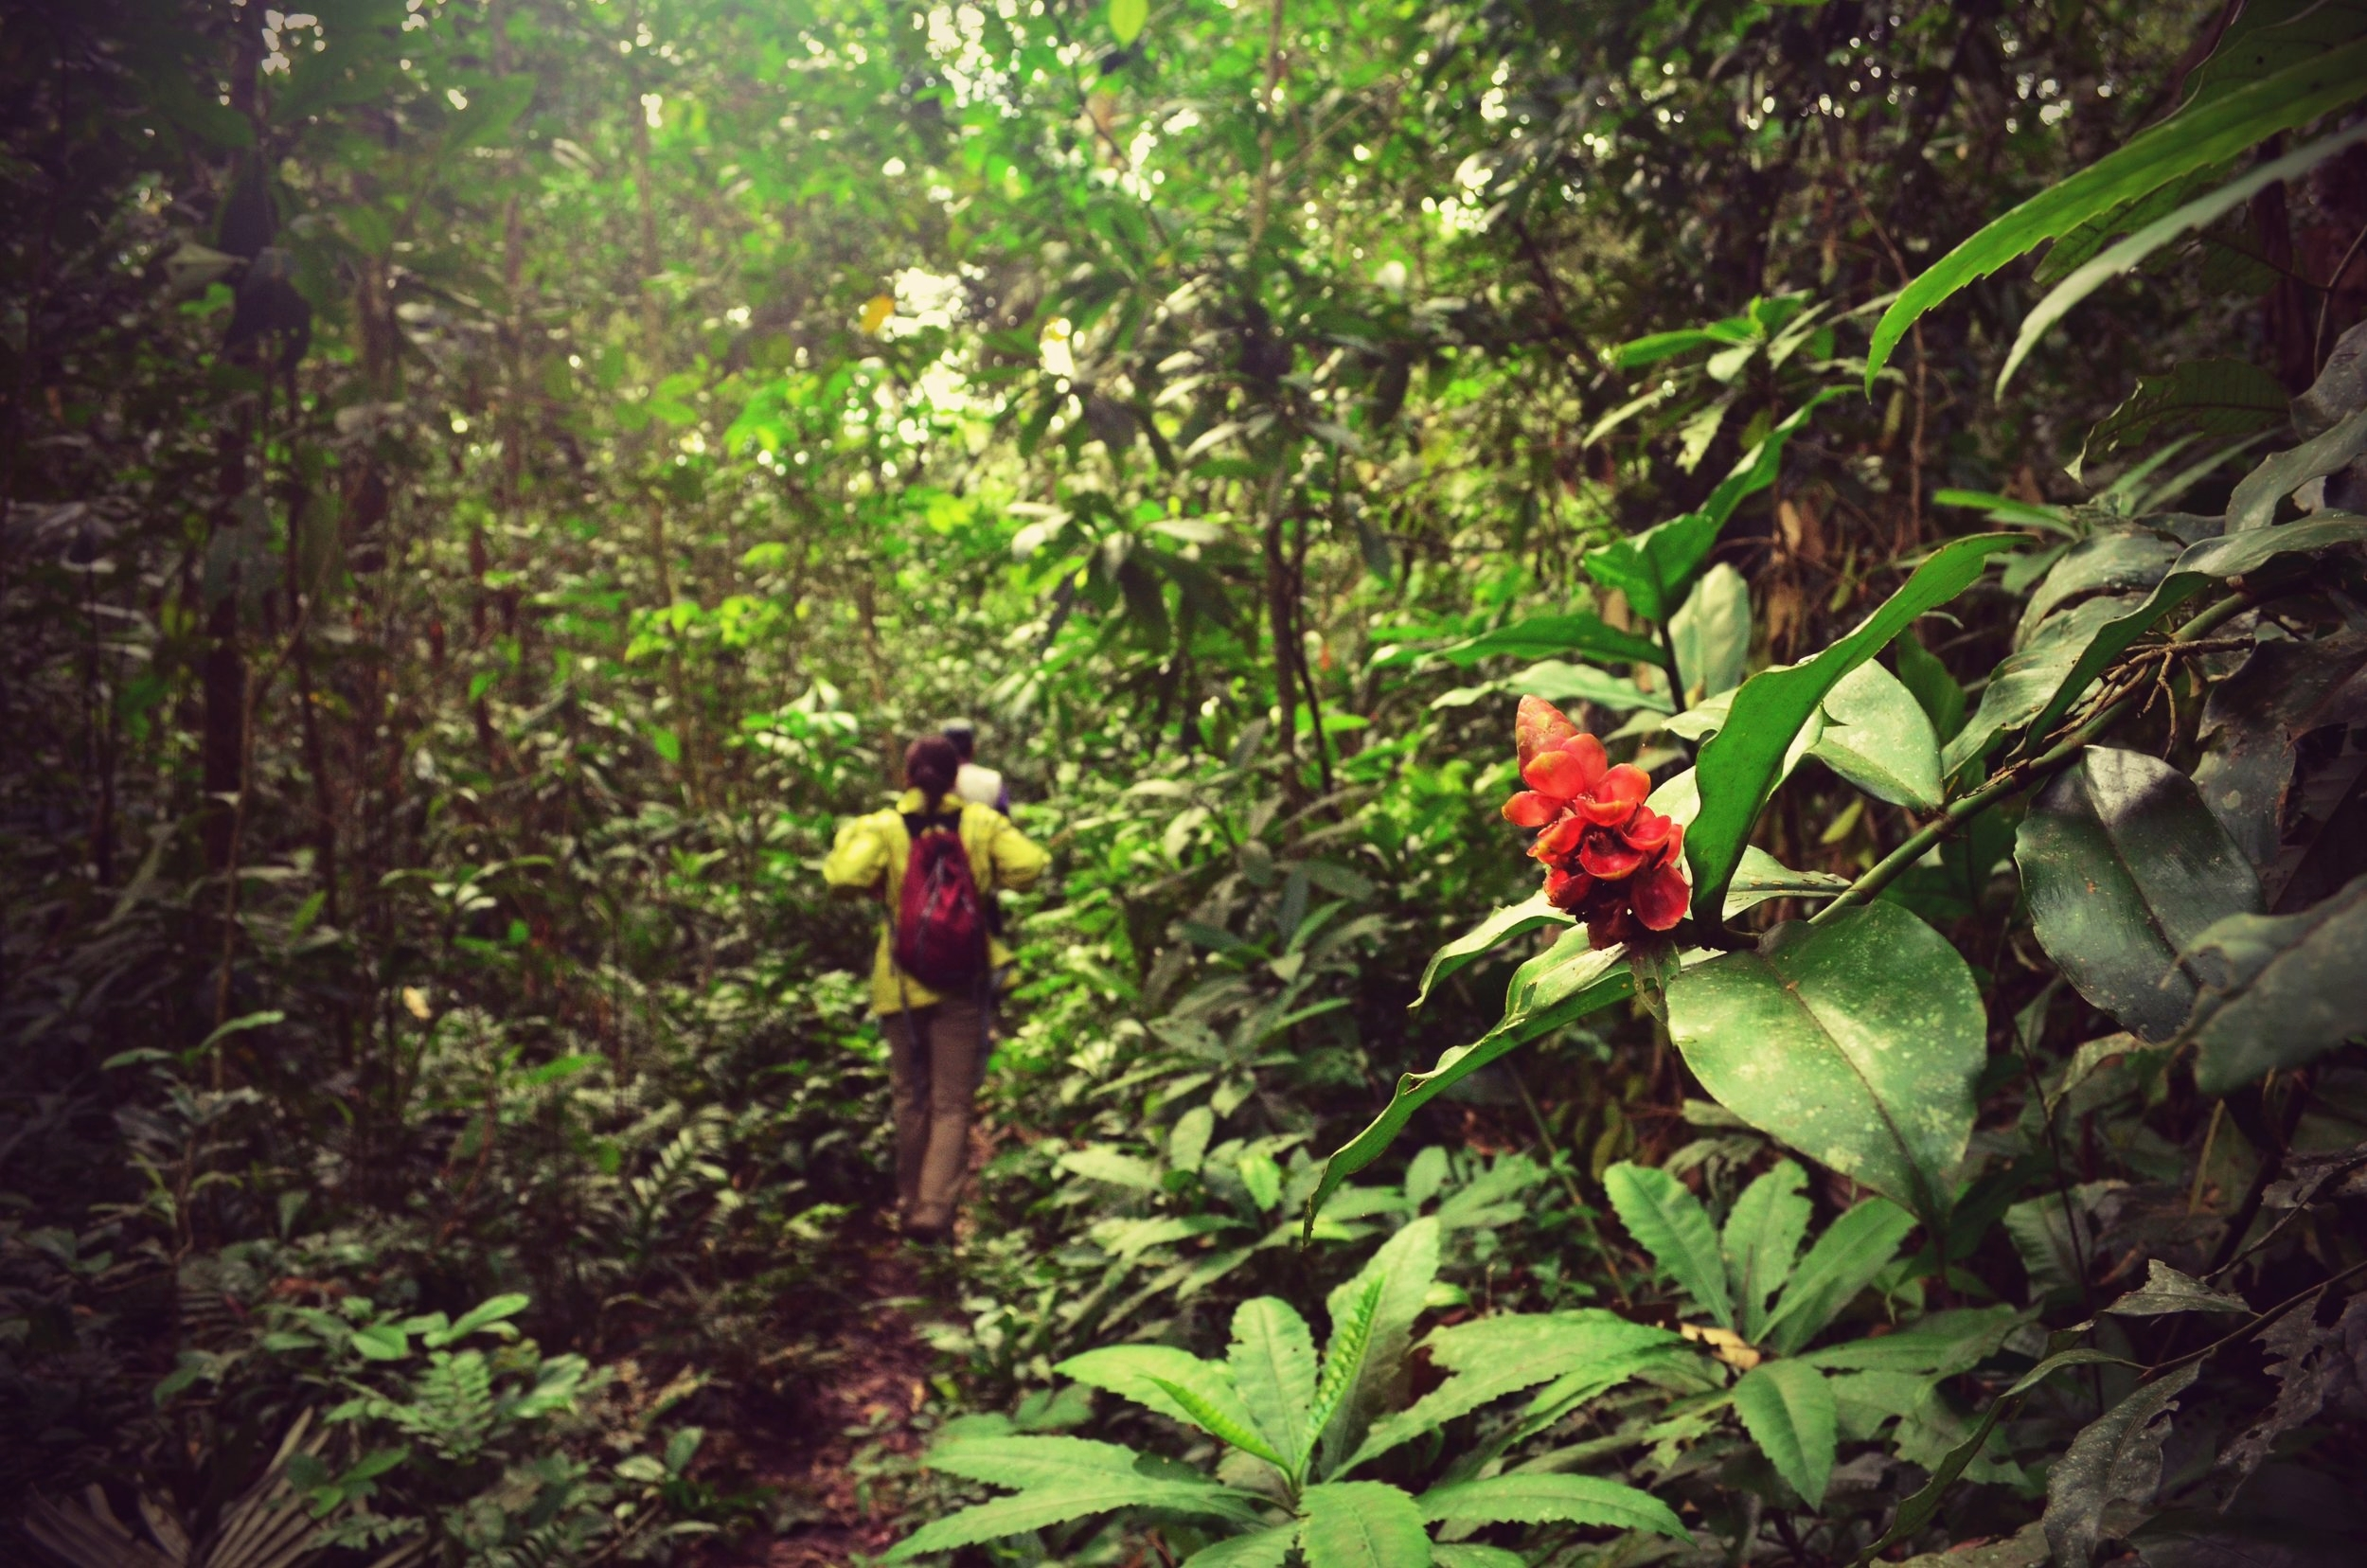 Wild and colorful plants and fruits decorate the amazon's dense green vegetation.